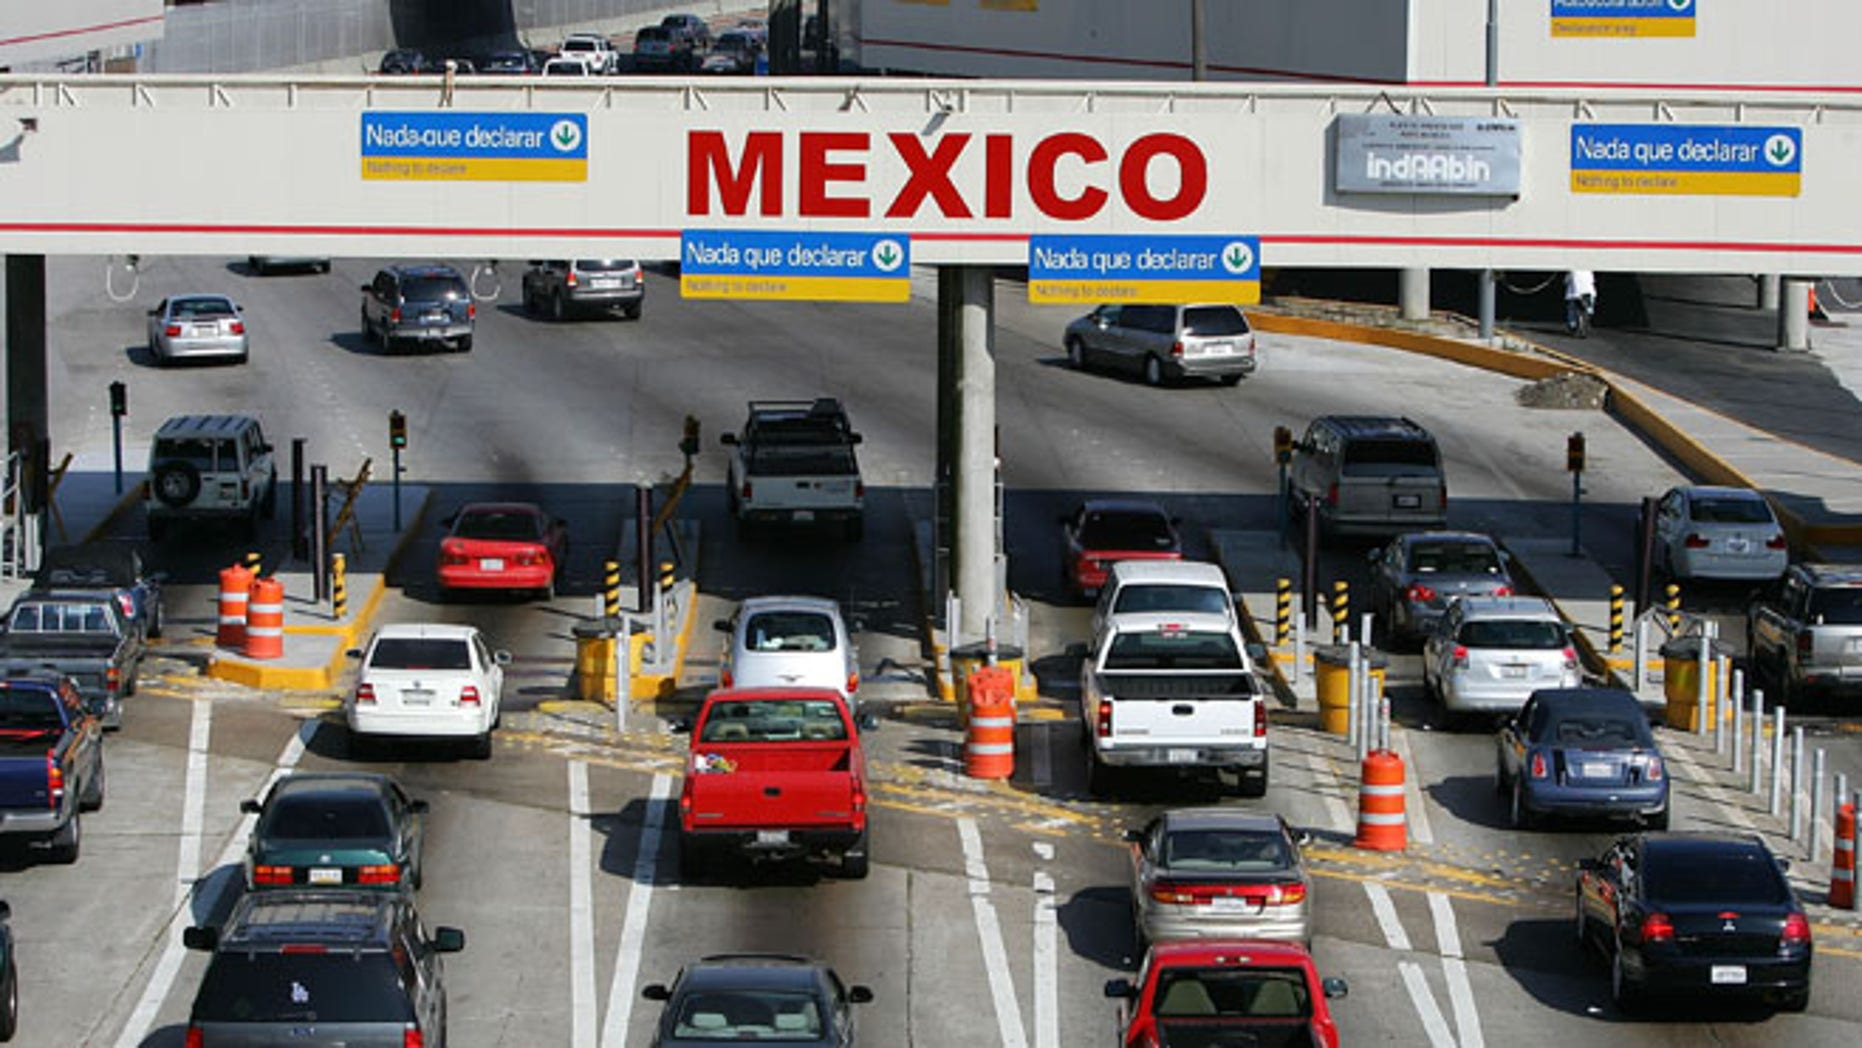 TIJUANA, MEXICO - JUNE 27:  Traffic in the US enters Mexico at the San Ysidro border crossing, the world?s busiest, on June 27, 2008 in Tijuana, Mexico. With the cost of gasoline in California around $4.60 per gallon, many drivers are buying their fuel in Mexico for about $3.20. There is a price to pay for cheaper gas though. Mexican gas is formulated with more sulfur than California gas and that can damage the emission control equipment on US cars, causing them to fail emissions tests and leading to expensive repairs. In addition, unless a driver has other business in Mexico, part of their fuel savings will be burned up idling in a line that can easily last for hours to get back into the US.   (Photo by David McNew/Getty Images)